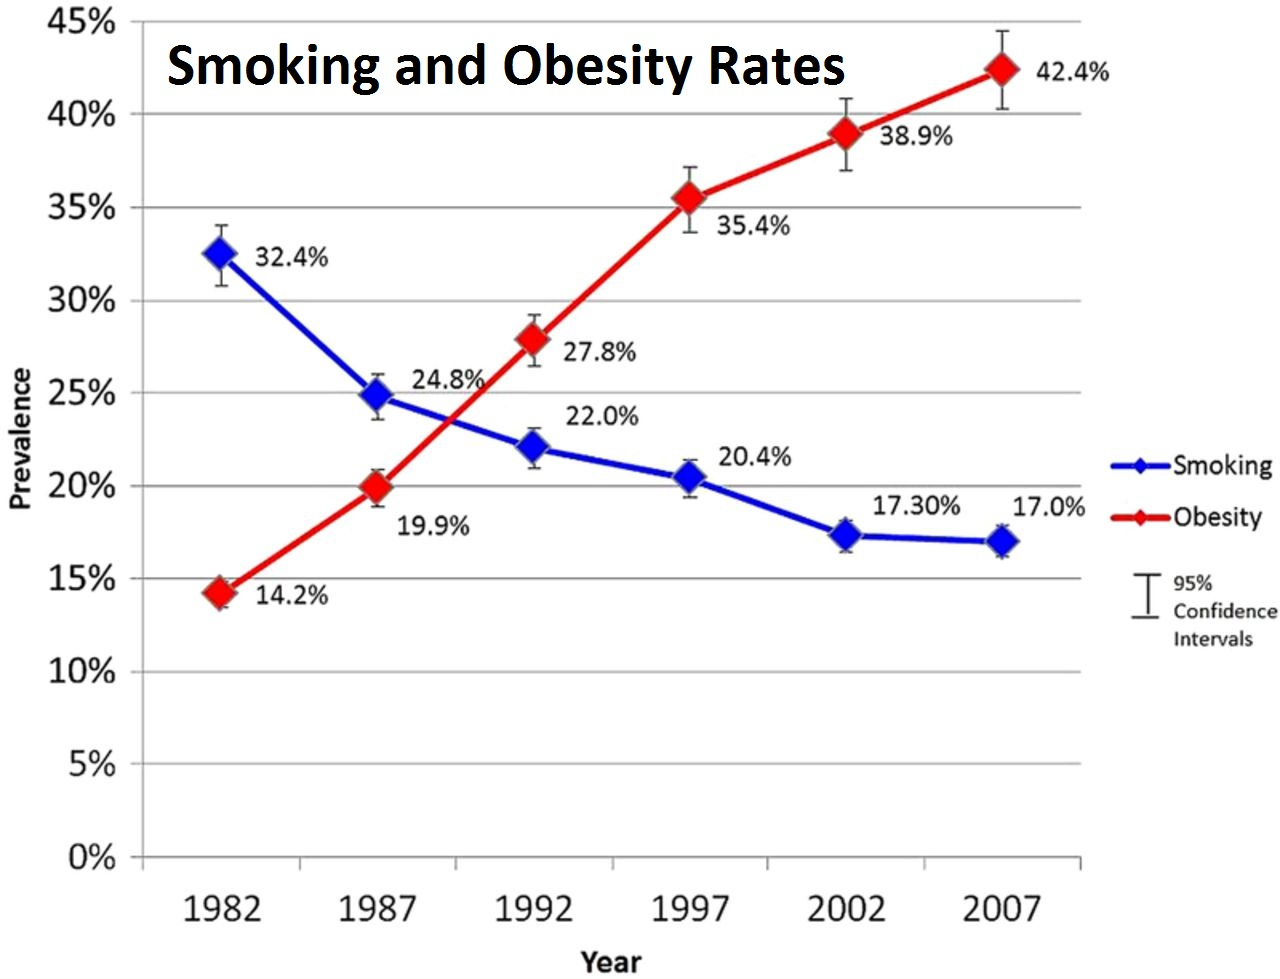 Smoking and Obesity Prevalence